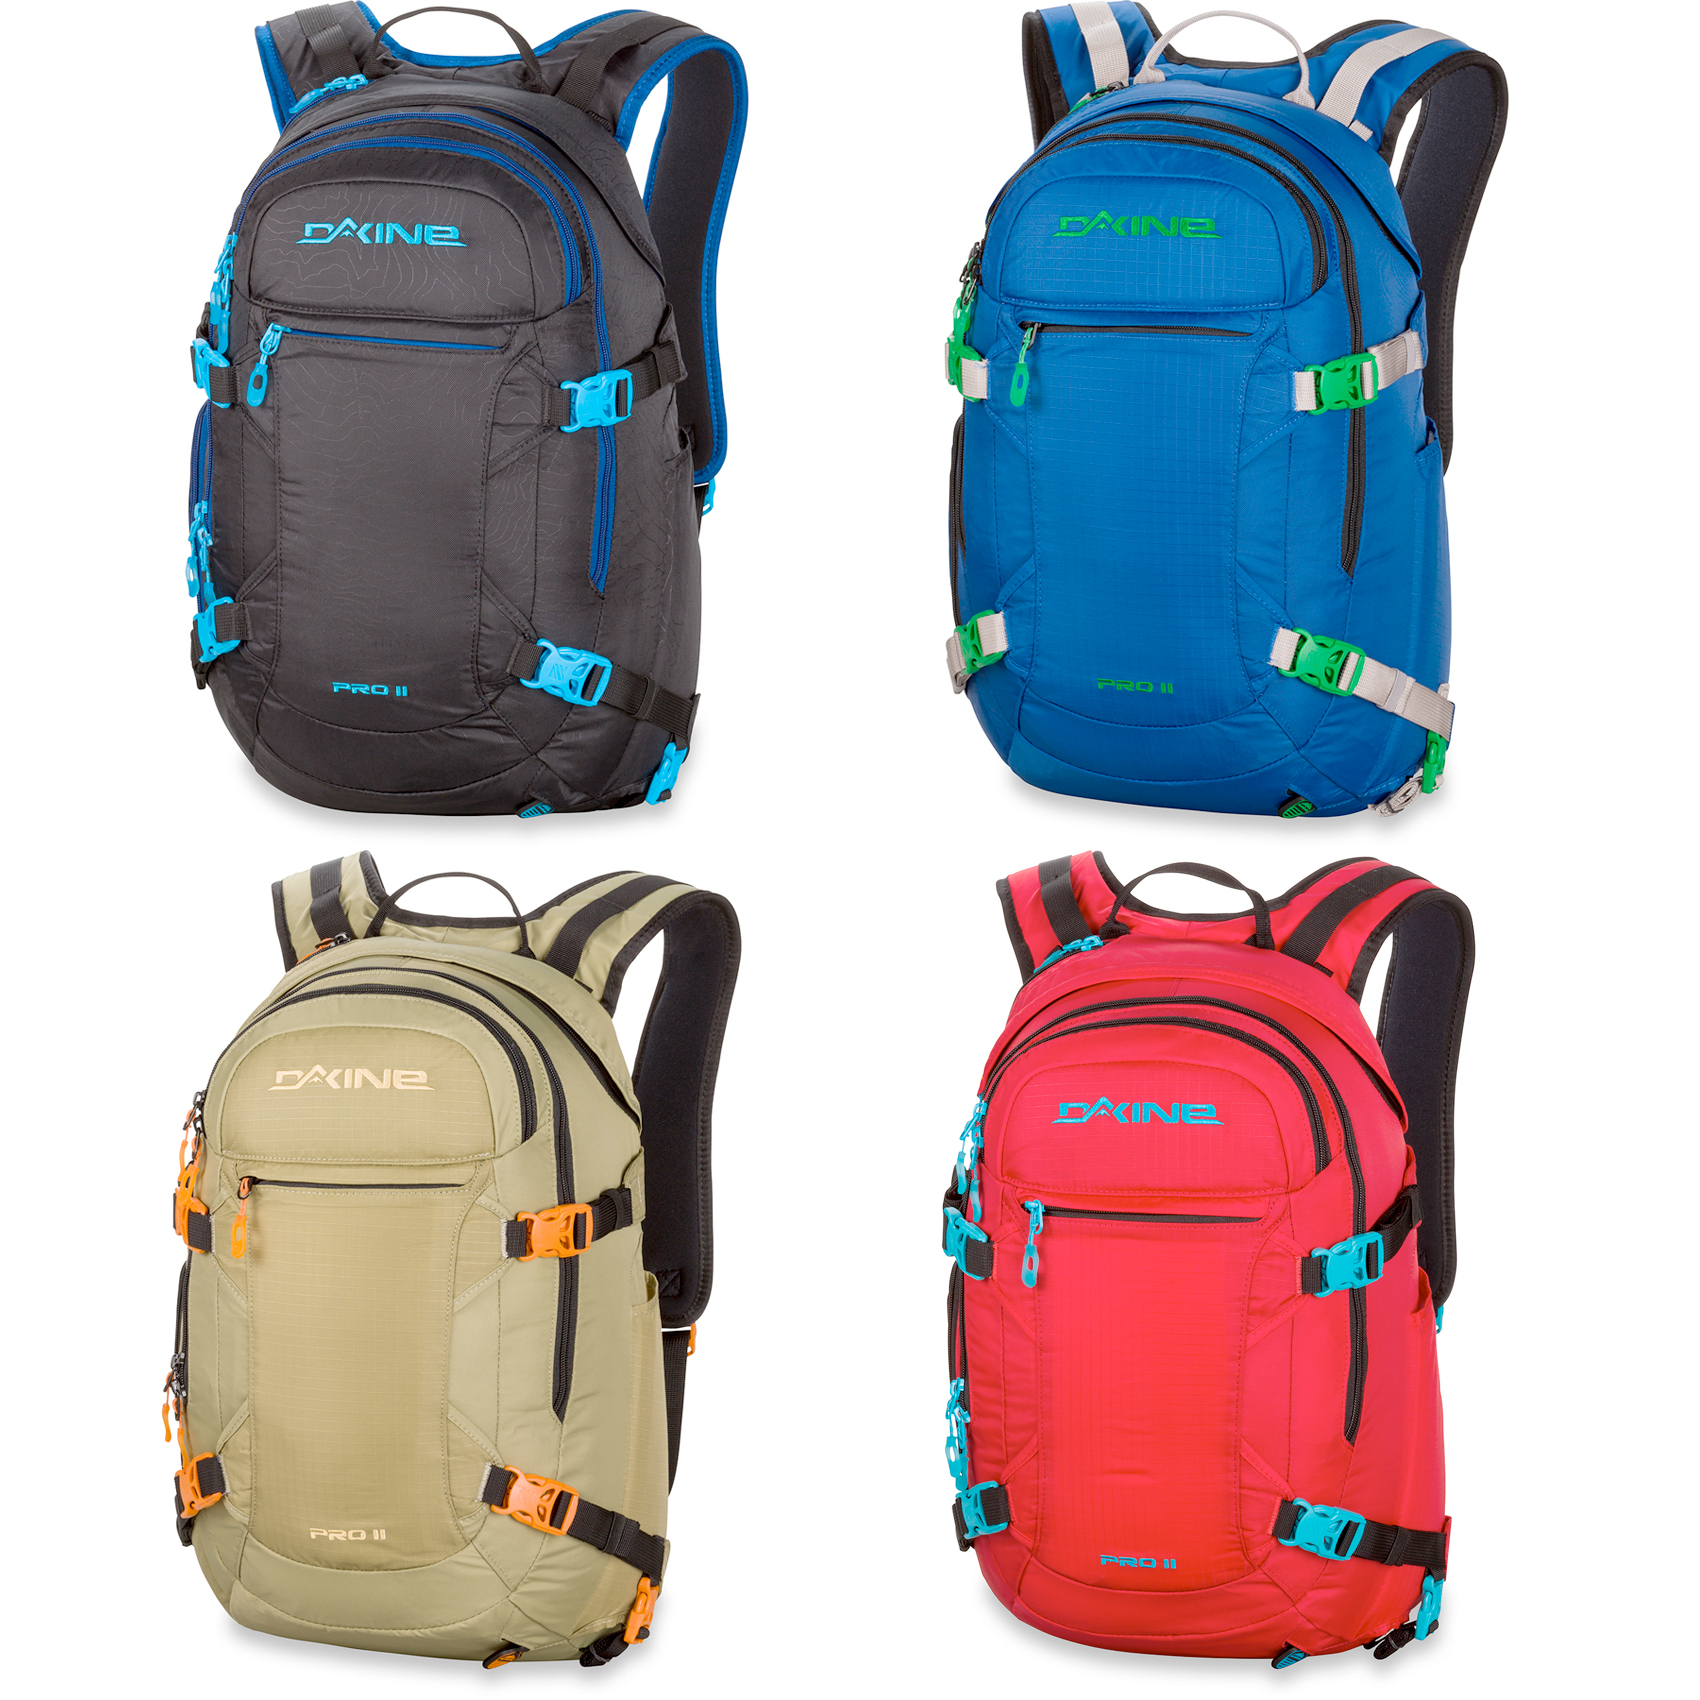 Dakine Pro Ii Backpack | Crazy Backpacks